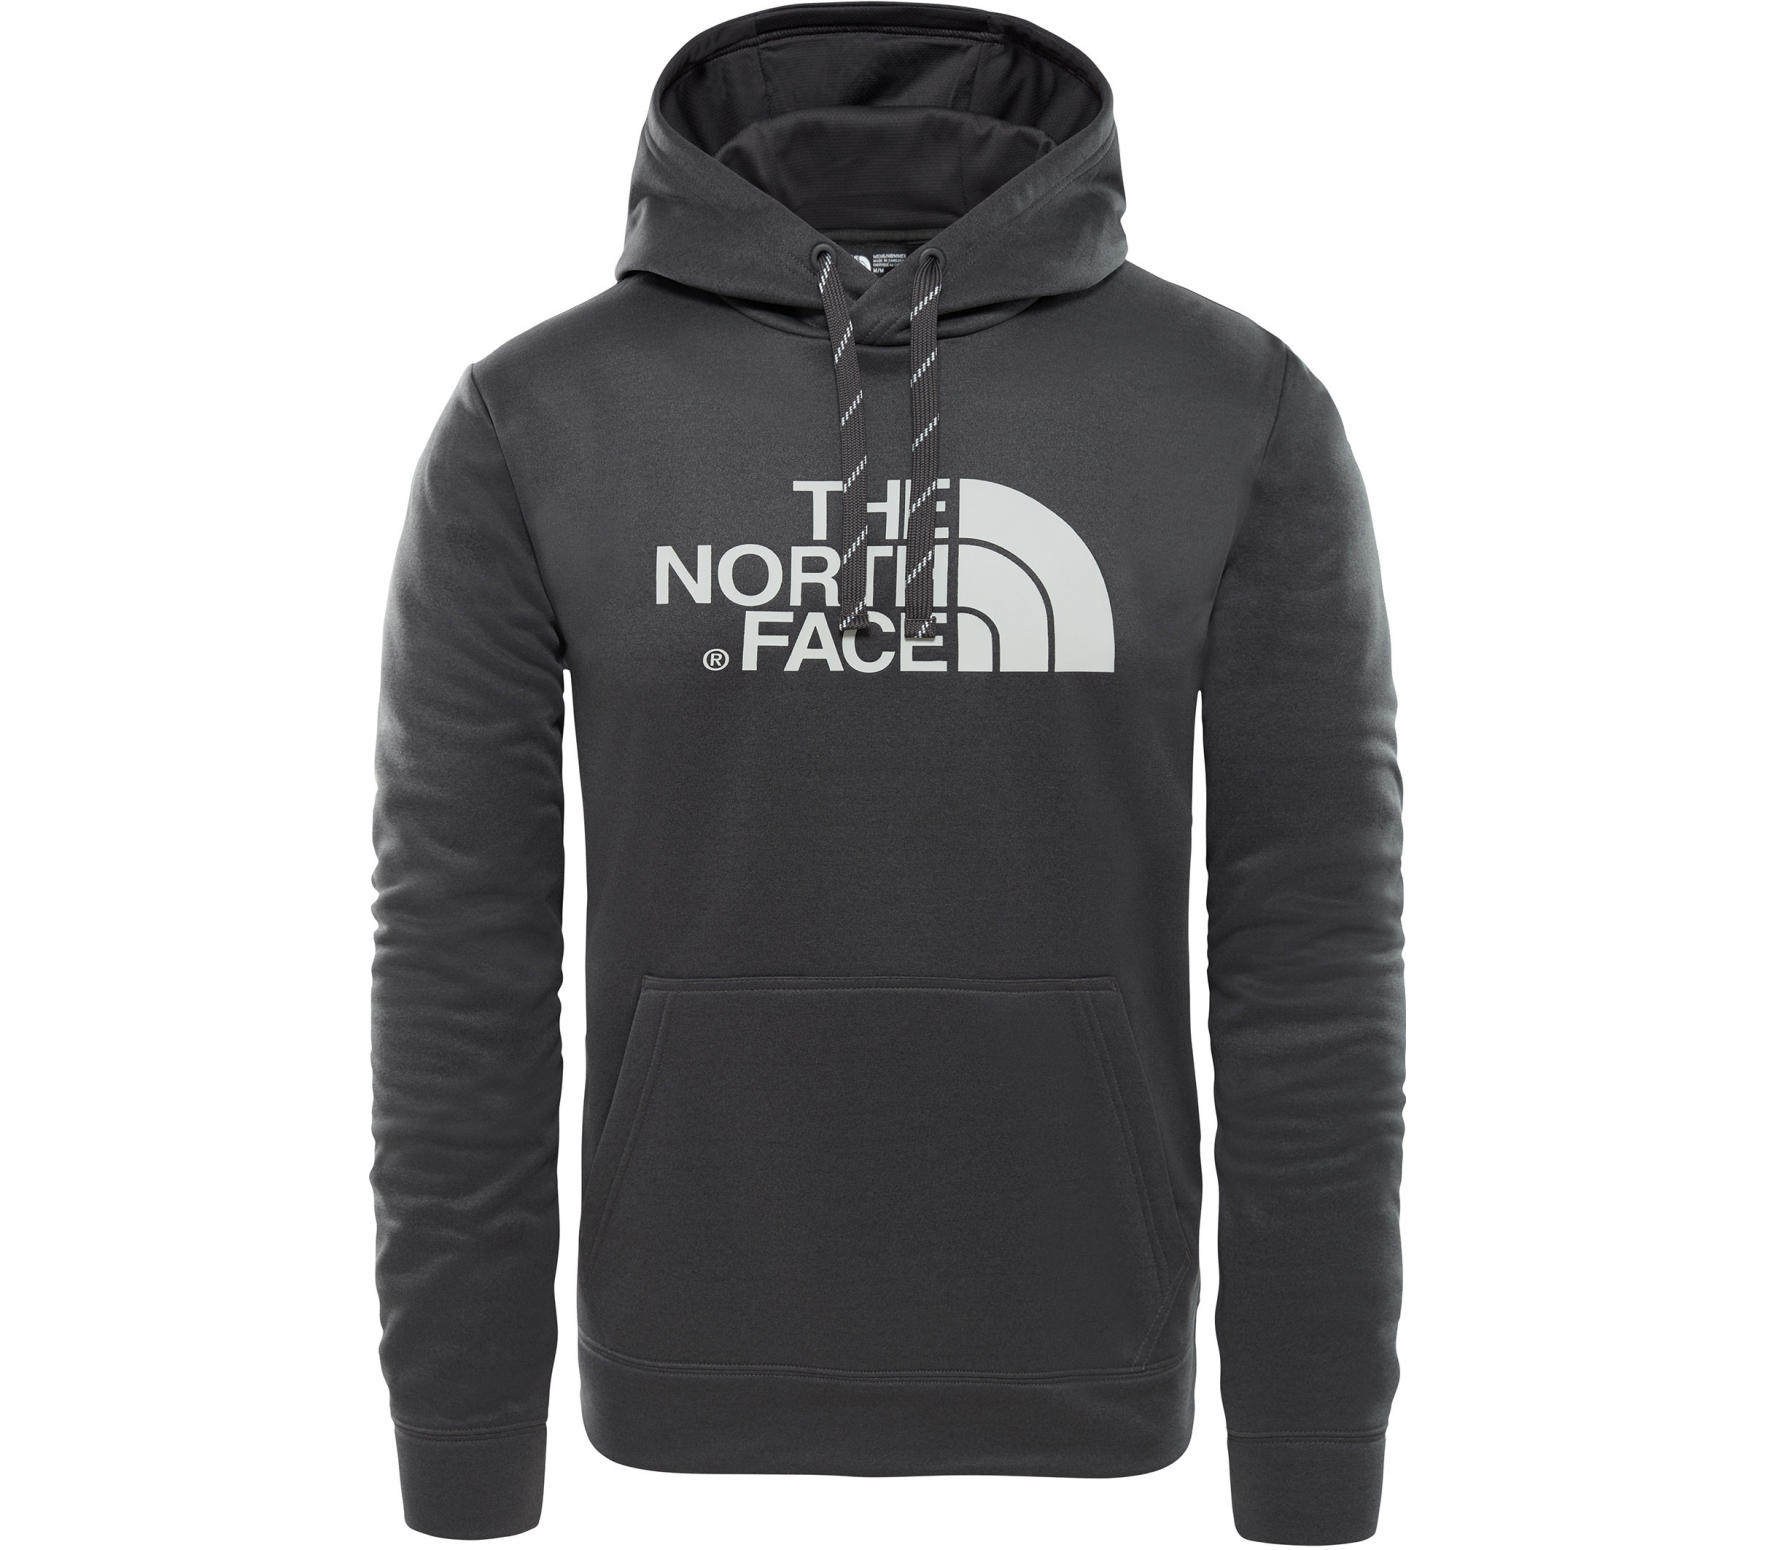 timeless design 09452 6bf8f The North Face - Surgent -Eu Herren Hoodie (grau)